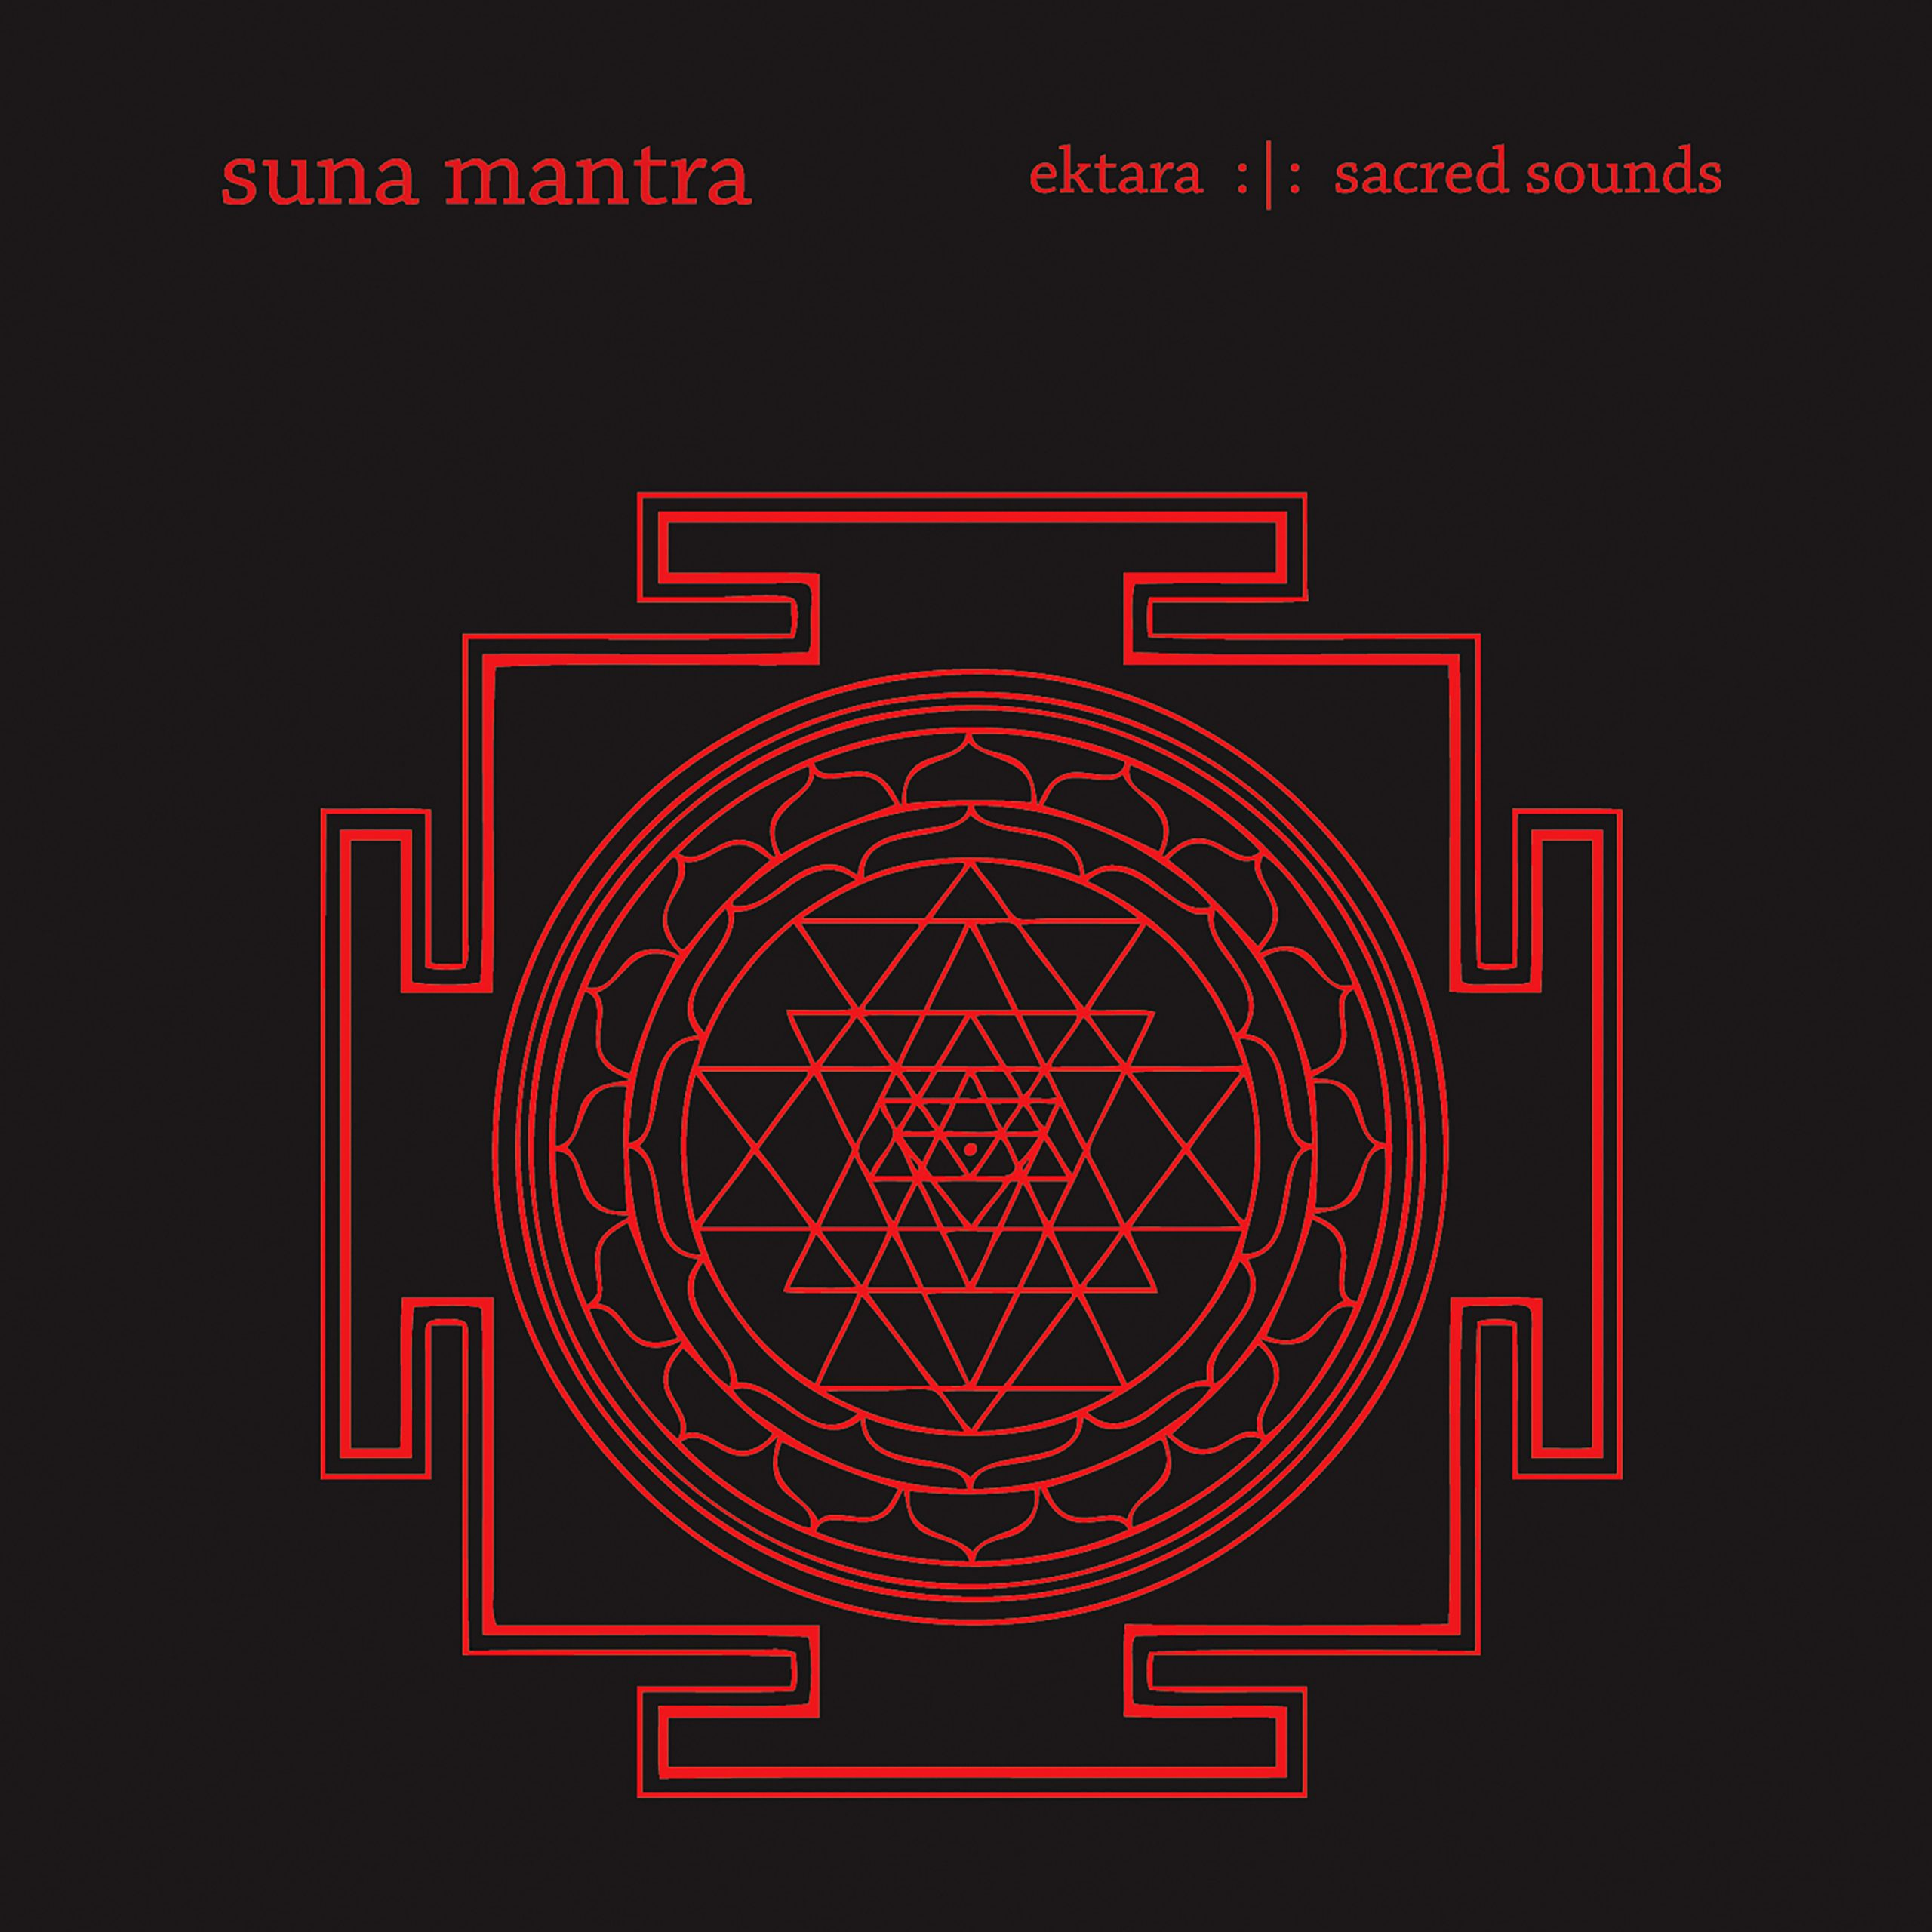 SuNA Mantra – Ektara Sacred Sounds